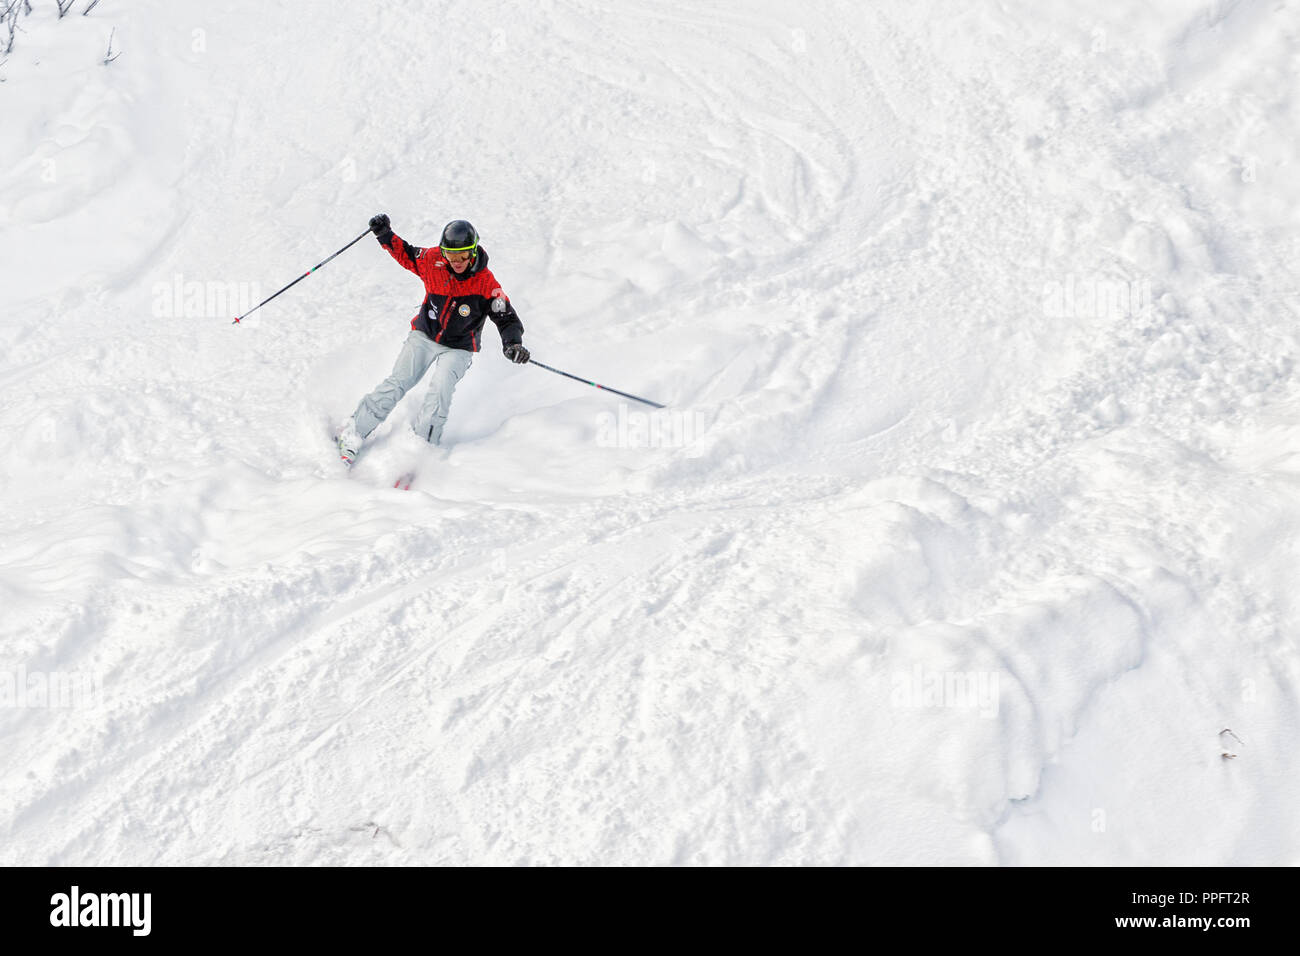 PYRENEES, ANDORRA - FEBRUARY 6, 2018: Downhill skier moves down from a steep slope. It is a lot of friable snow, freeride - Stock Image